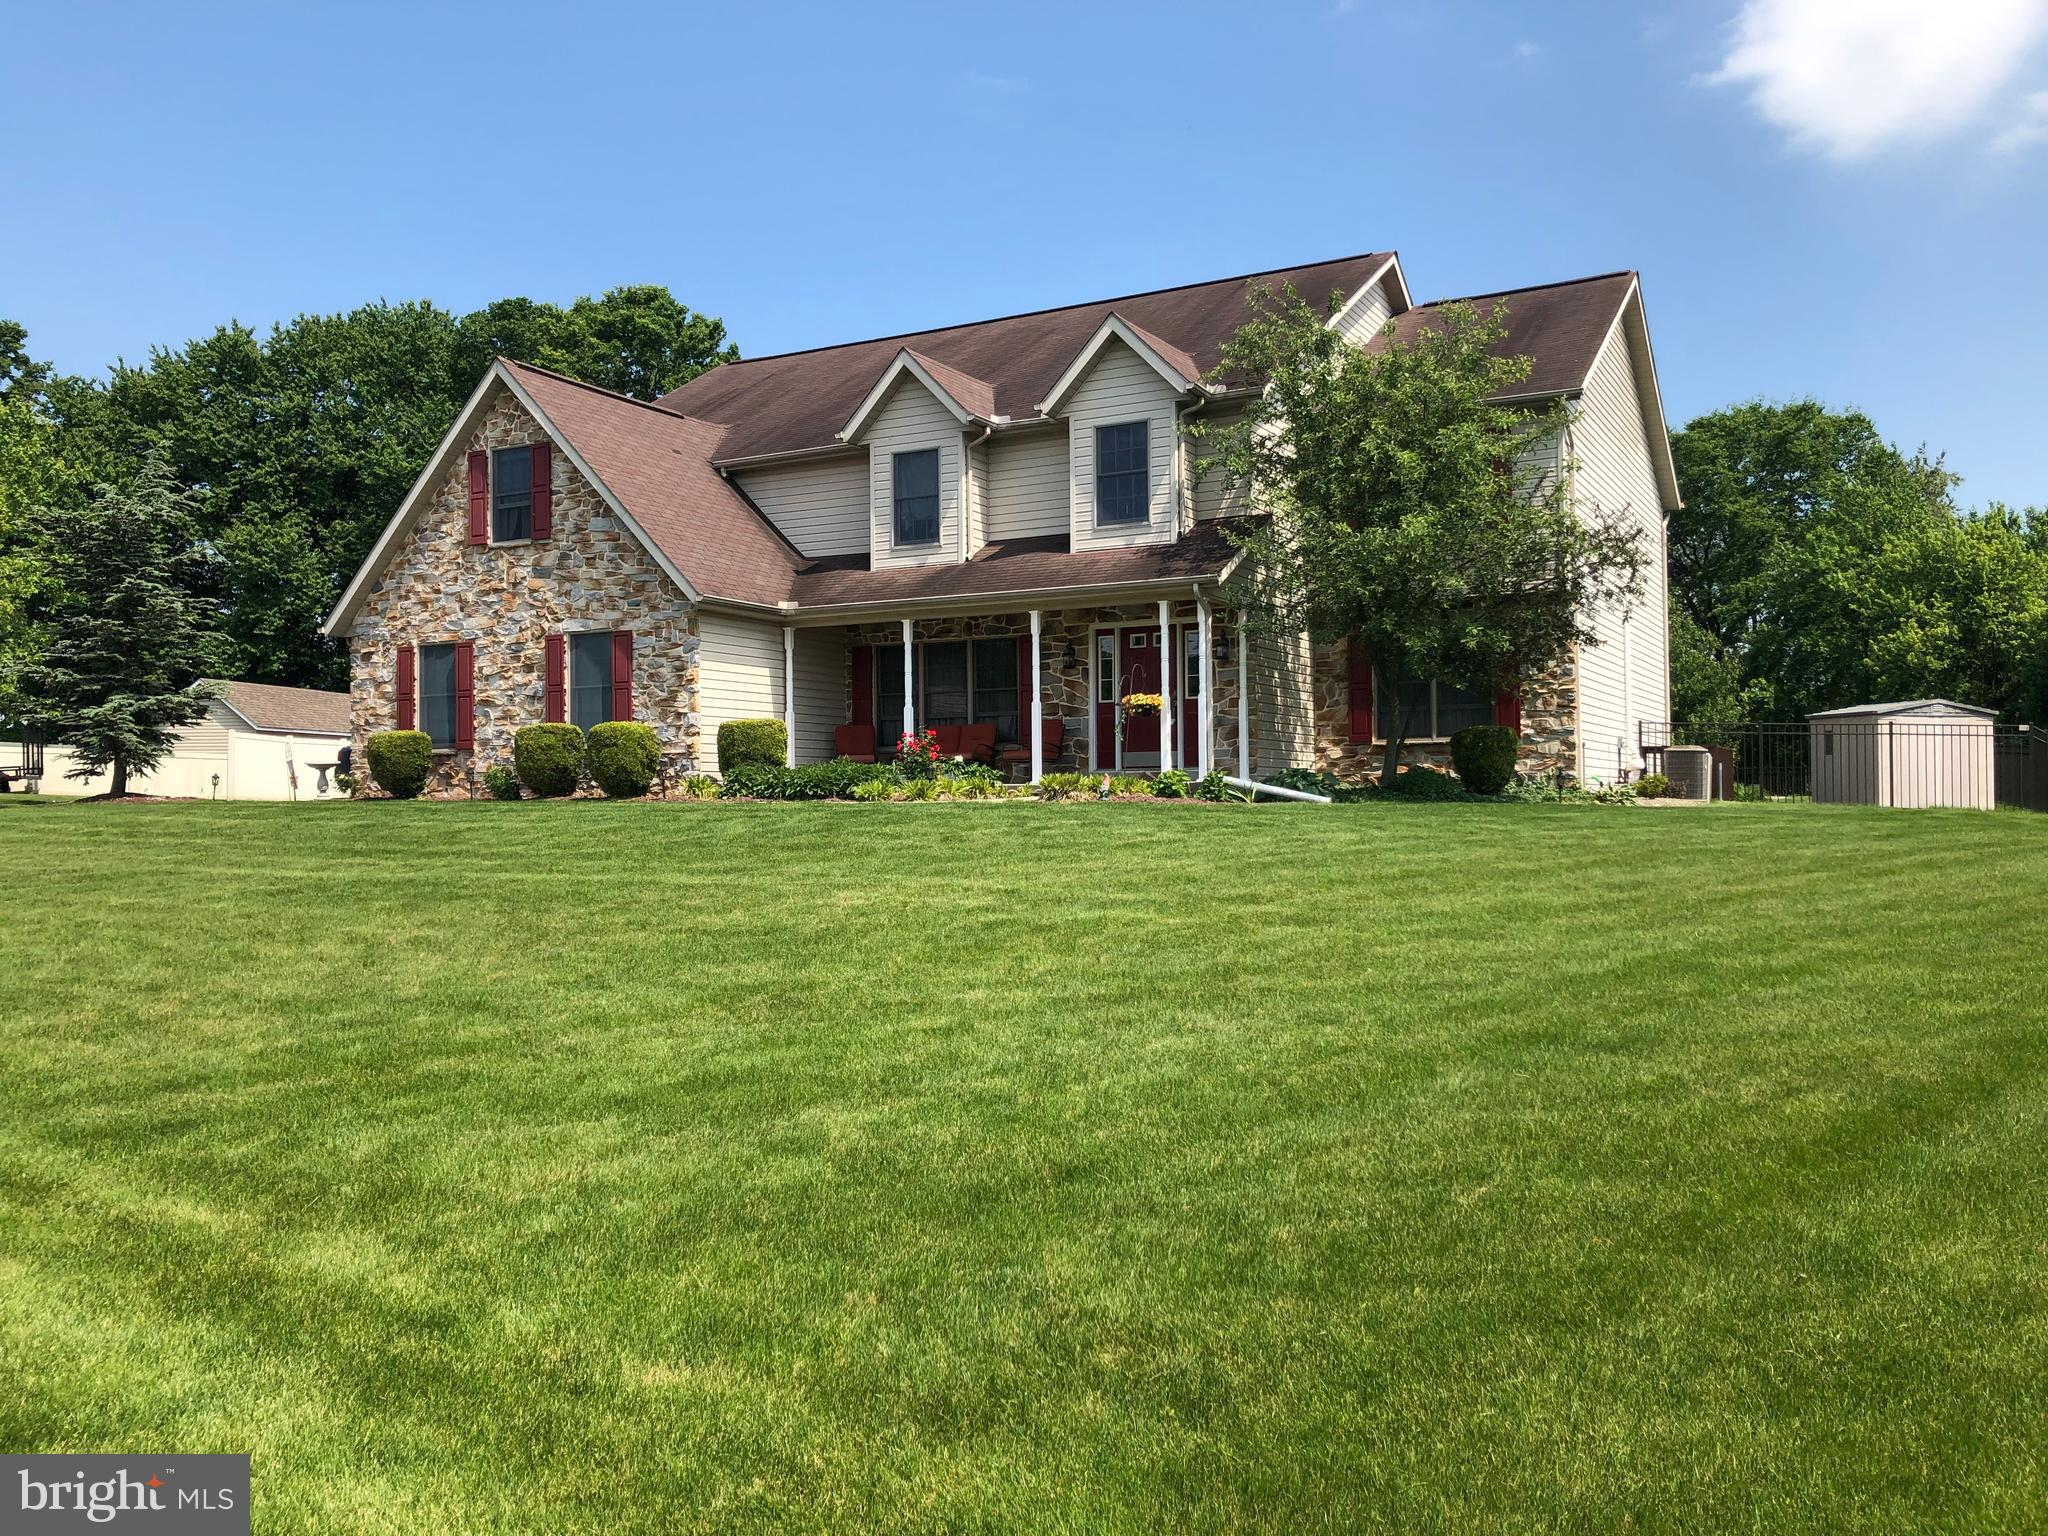 192 ALANTHIA LANE, ETTERS, PA 17319